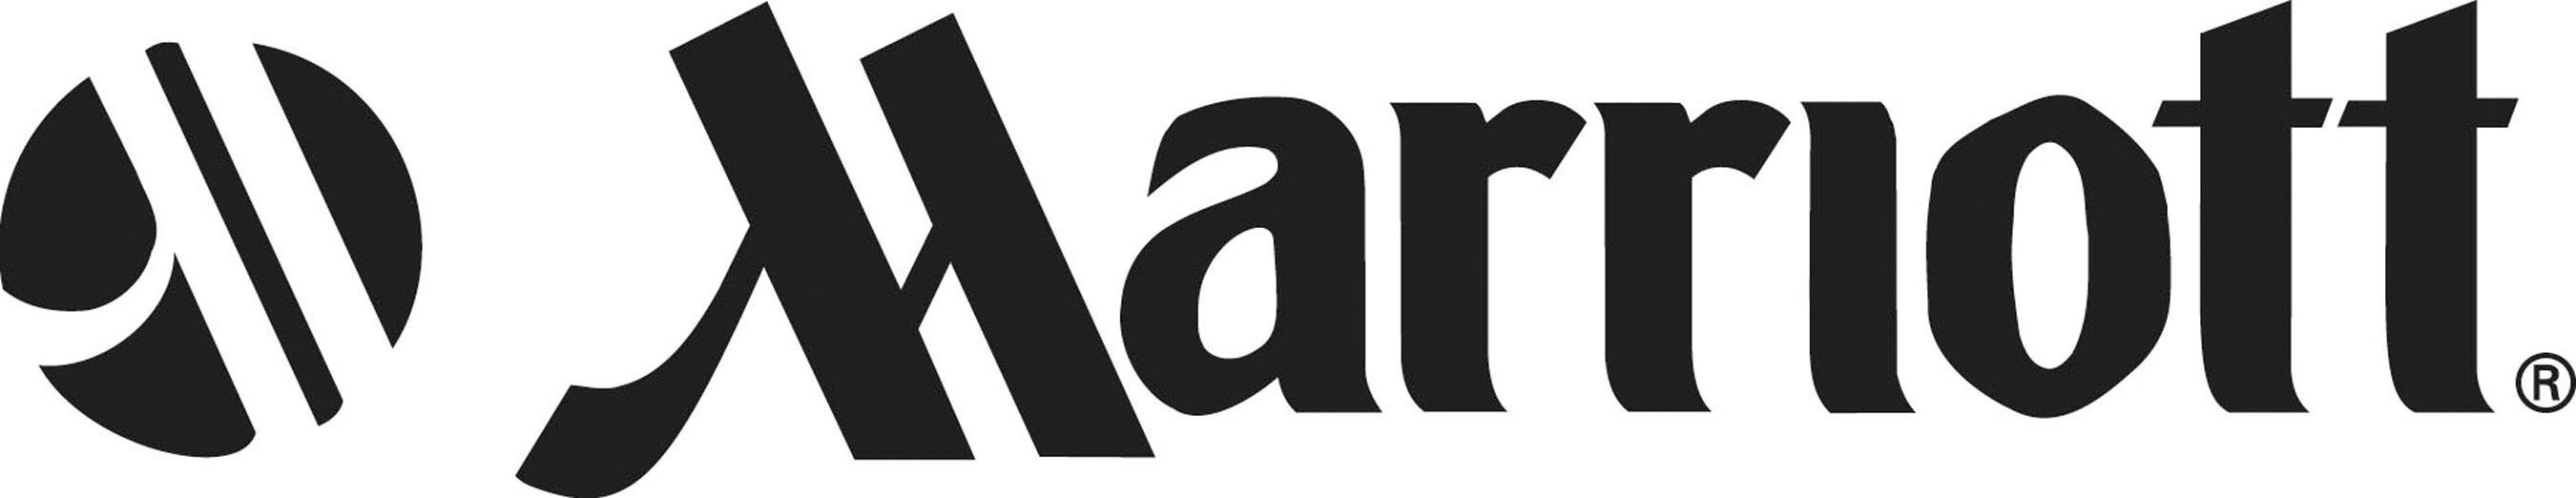 Marriott International, Inc. logo.